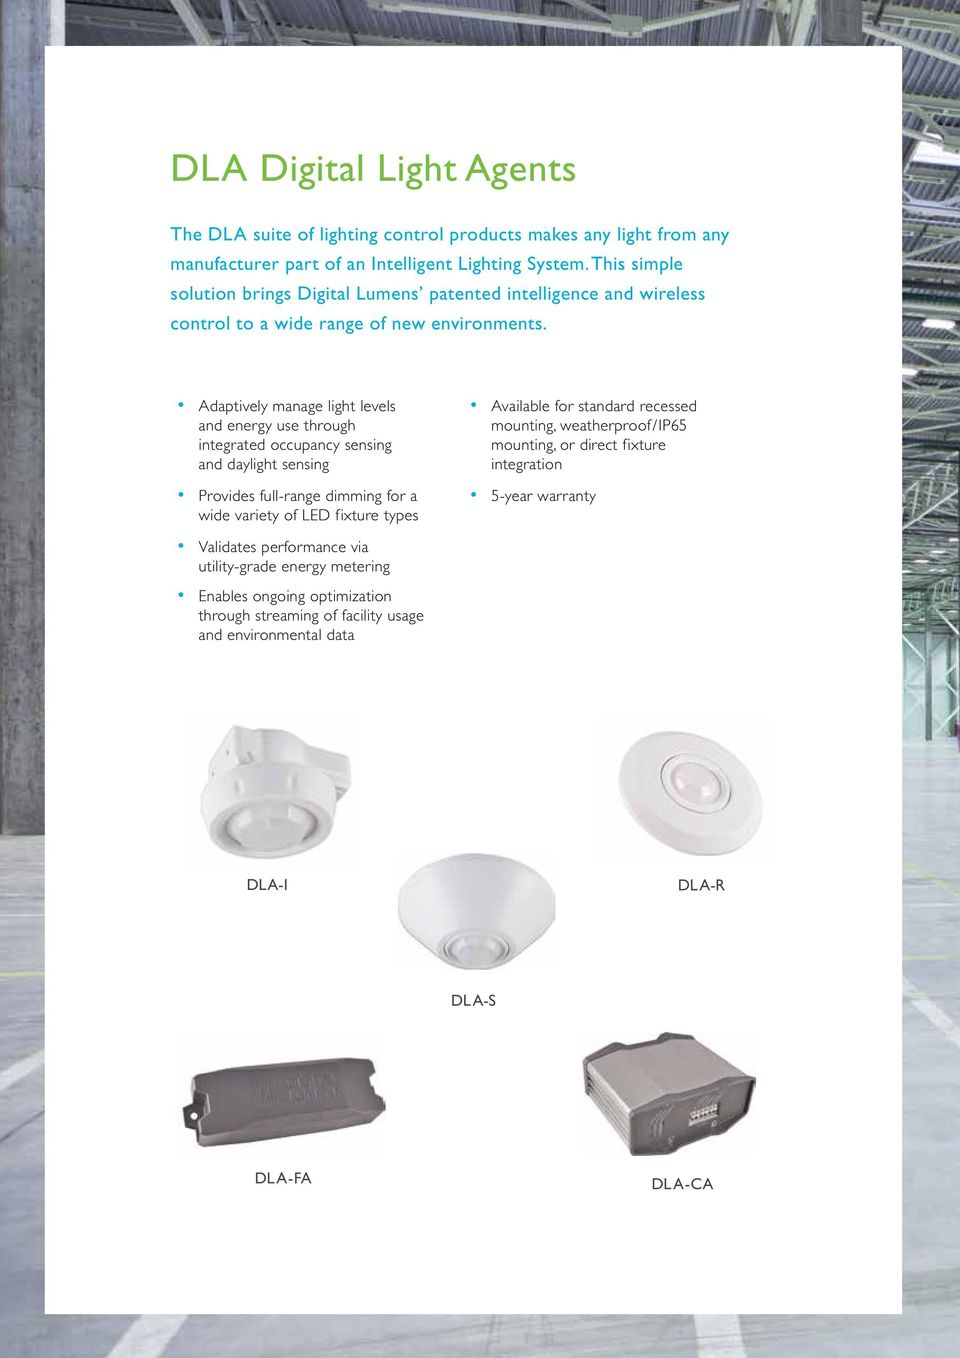 Adaptively manage light levels and energy use through integrated occupancy sensing and daylight sensing Provides full-range dimming for a wide variety of LED fixture types Available